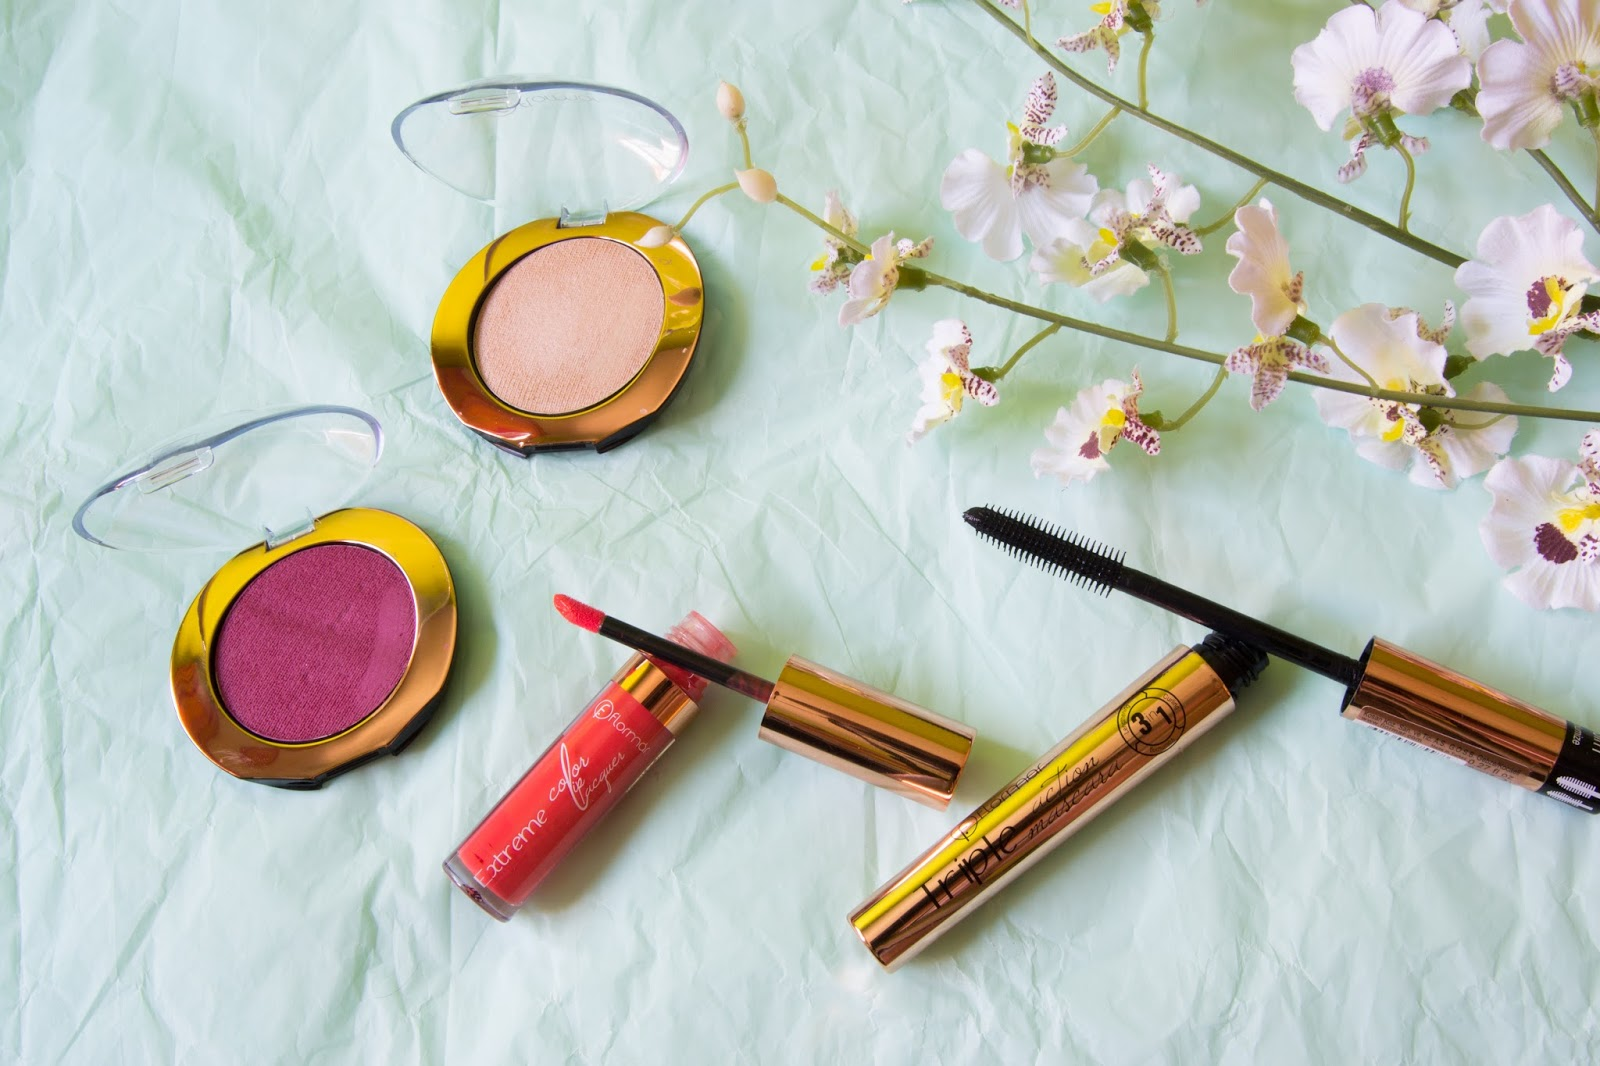 Flormar, Products I